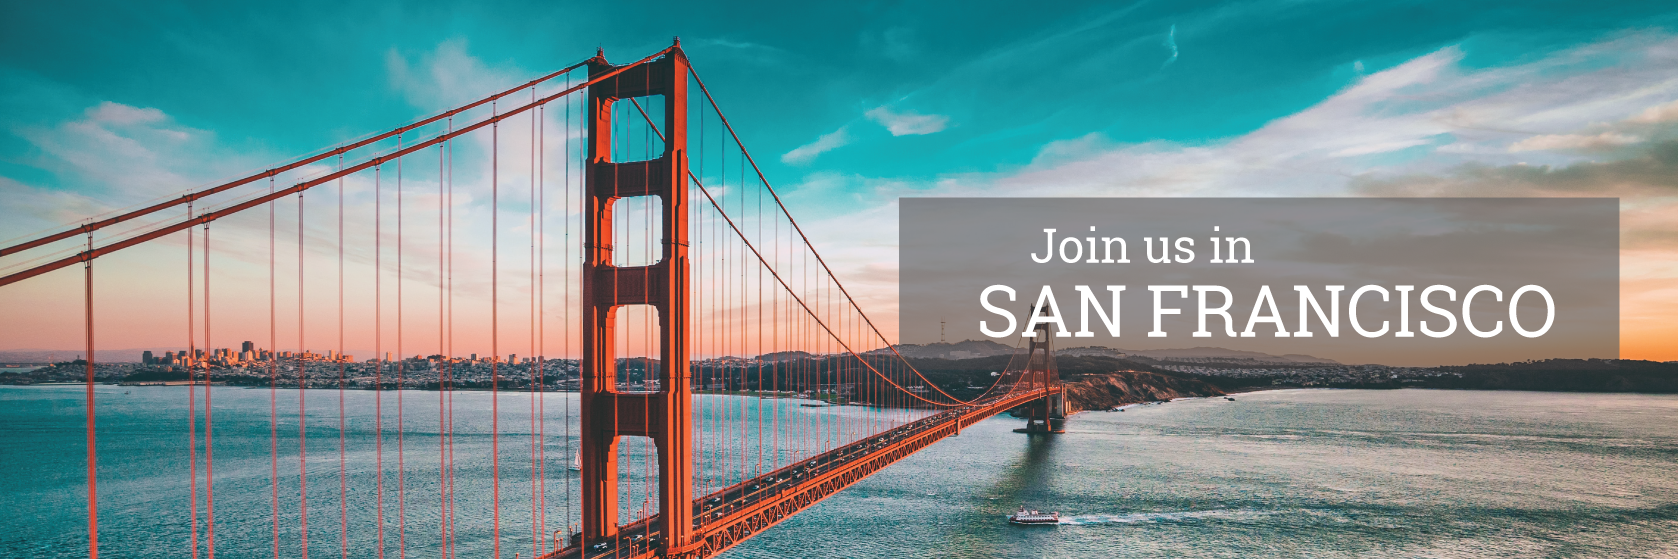 website-slider-join-us-in-sanfran